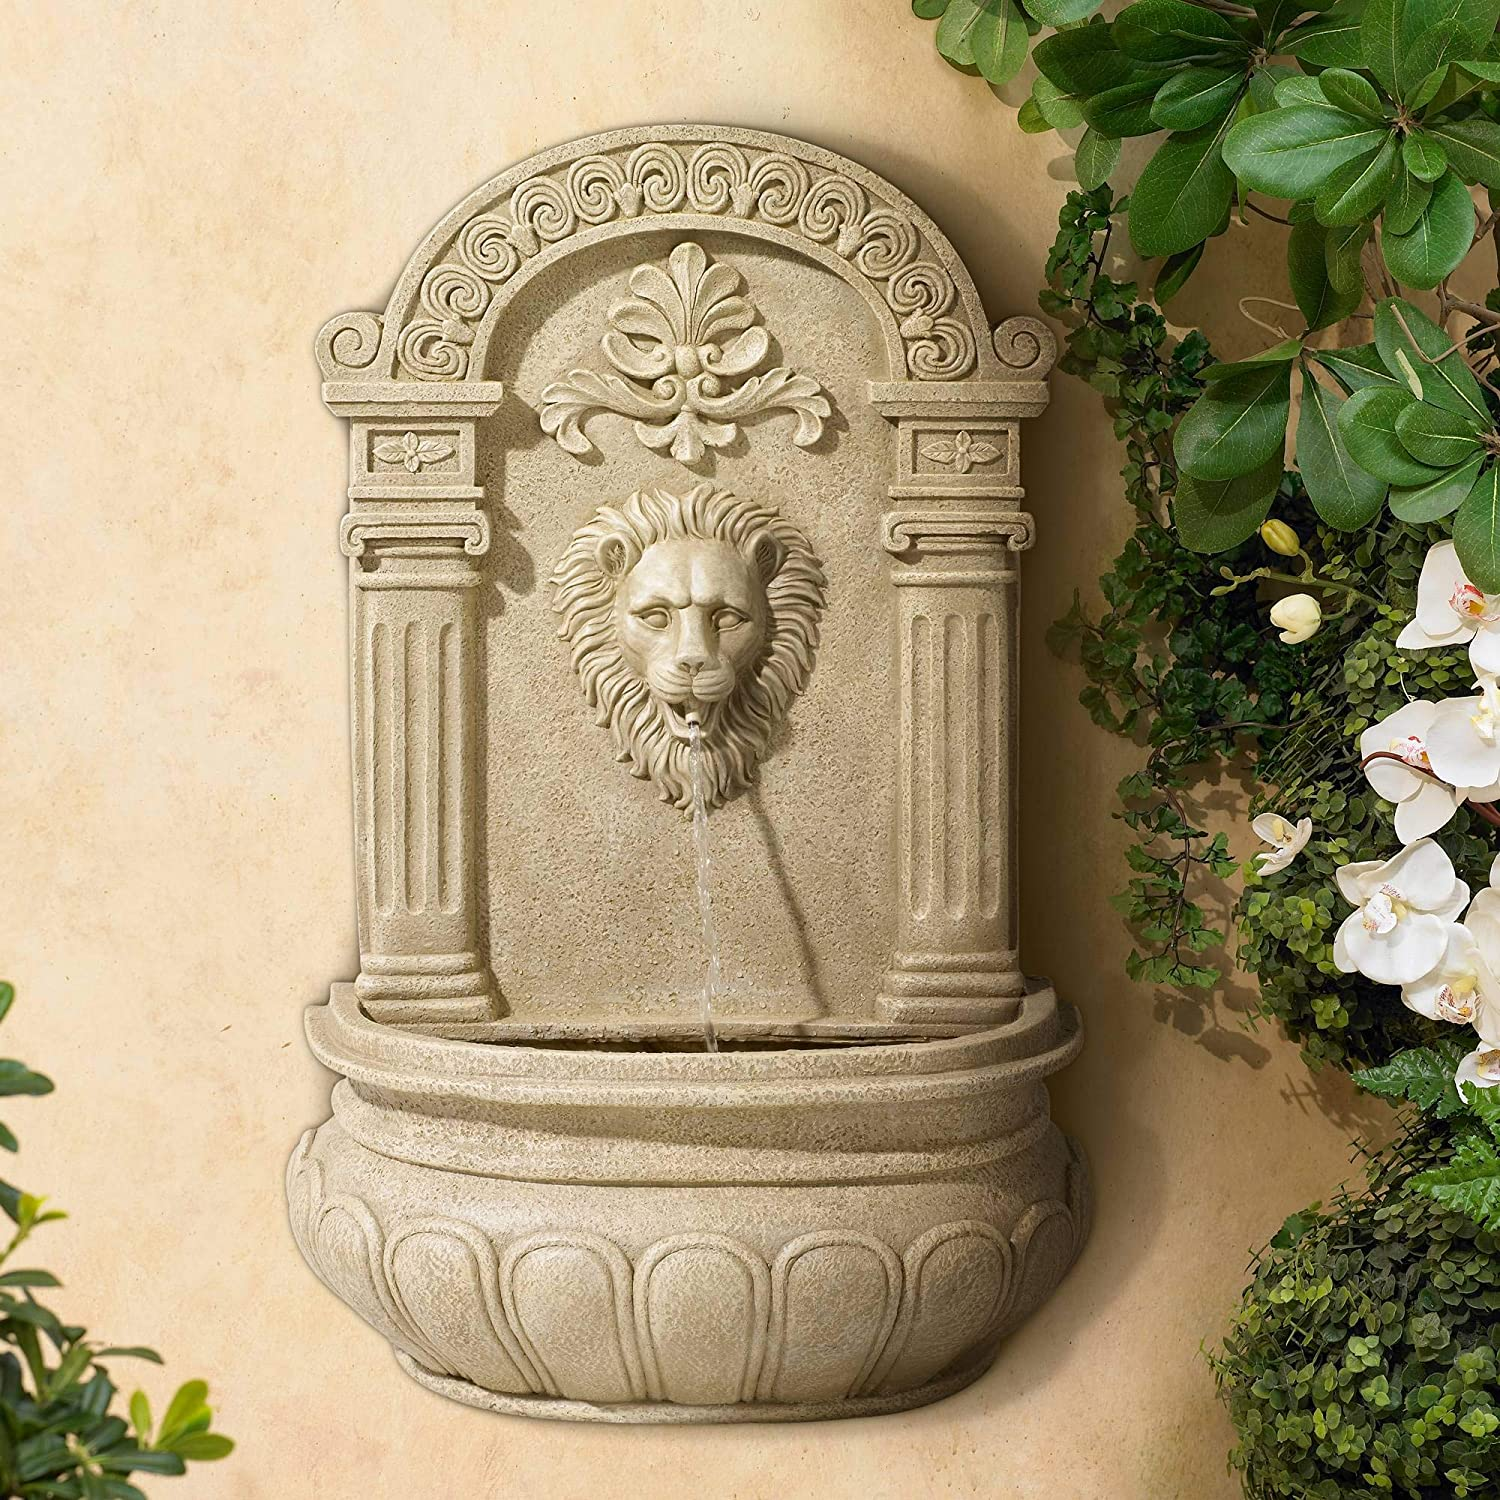 "Universal Lighting and Decor Lion Face Roman Outdoor Wall Water Fountain 31"" High for Yard Garden Patio Deck Home Entryway - John Timberland"